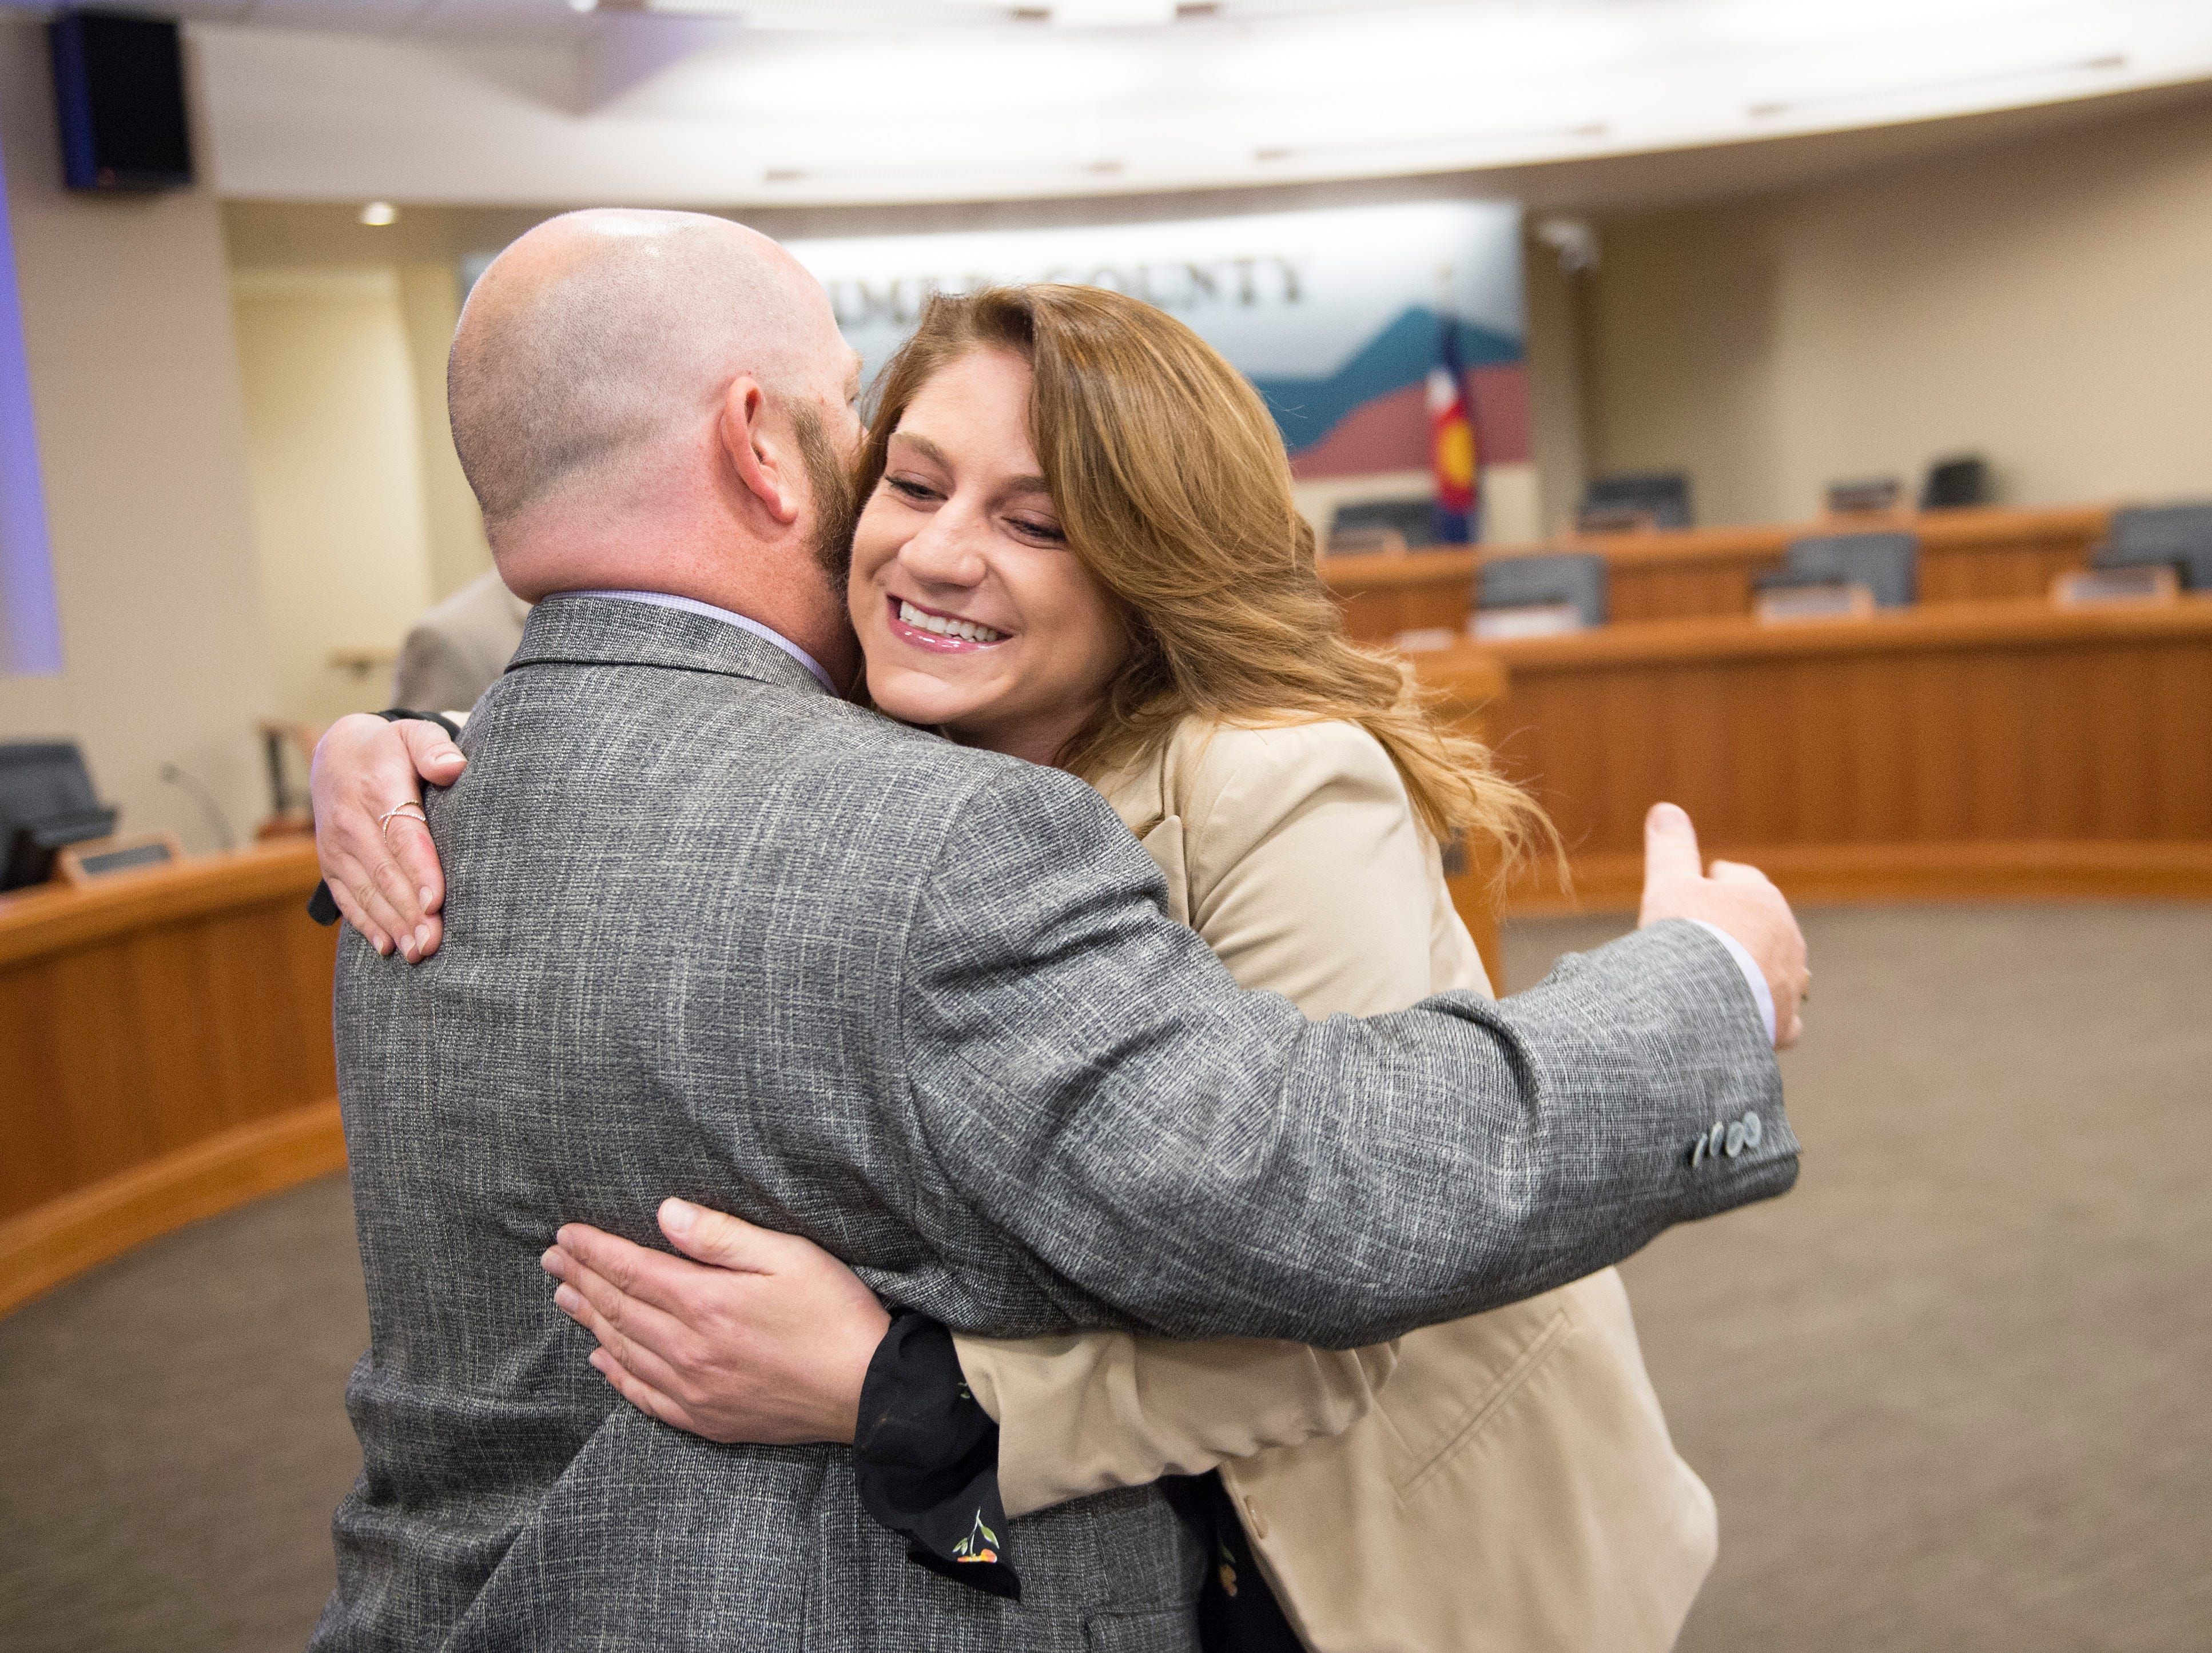 Sean Dougherty hugs his campaign manager, Mackenzie Davin before he is sworn in as Larimer County Commissioner on Friday, September 28, 2018. Dougherty, running for the District 1 seat of the commission,  was appointed to the position in the vacancy left by Lew Gaiter III after his death on September 18.